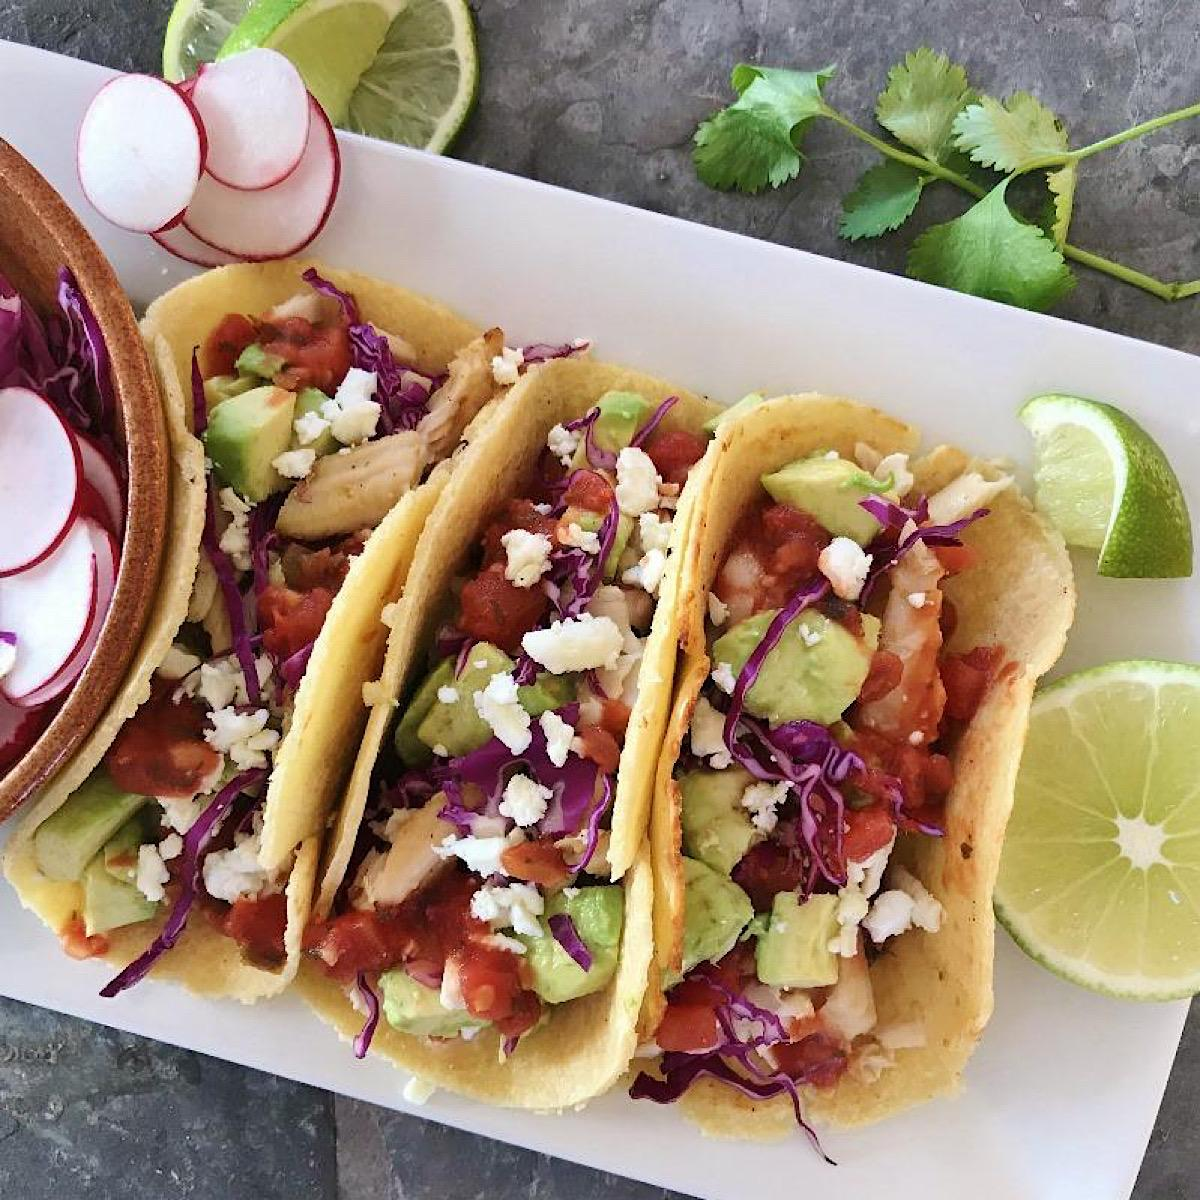 Tacos with low carb tortillas